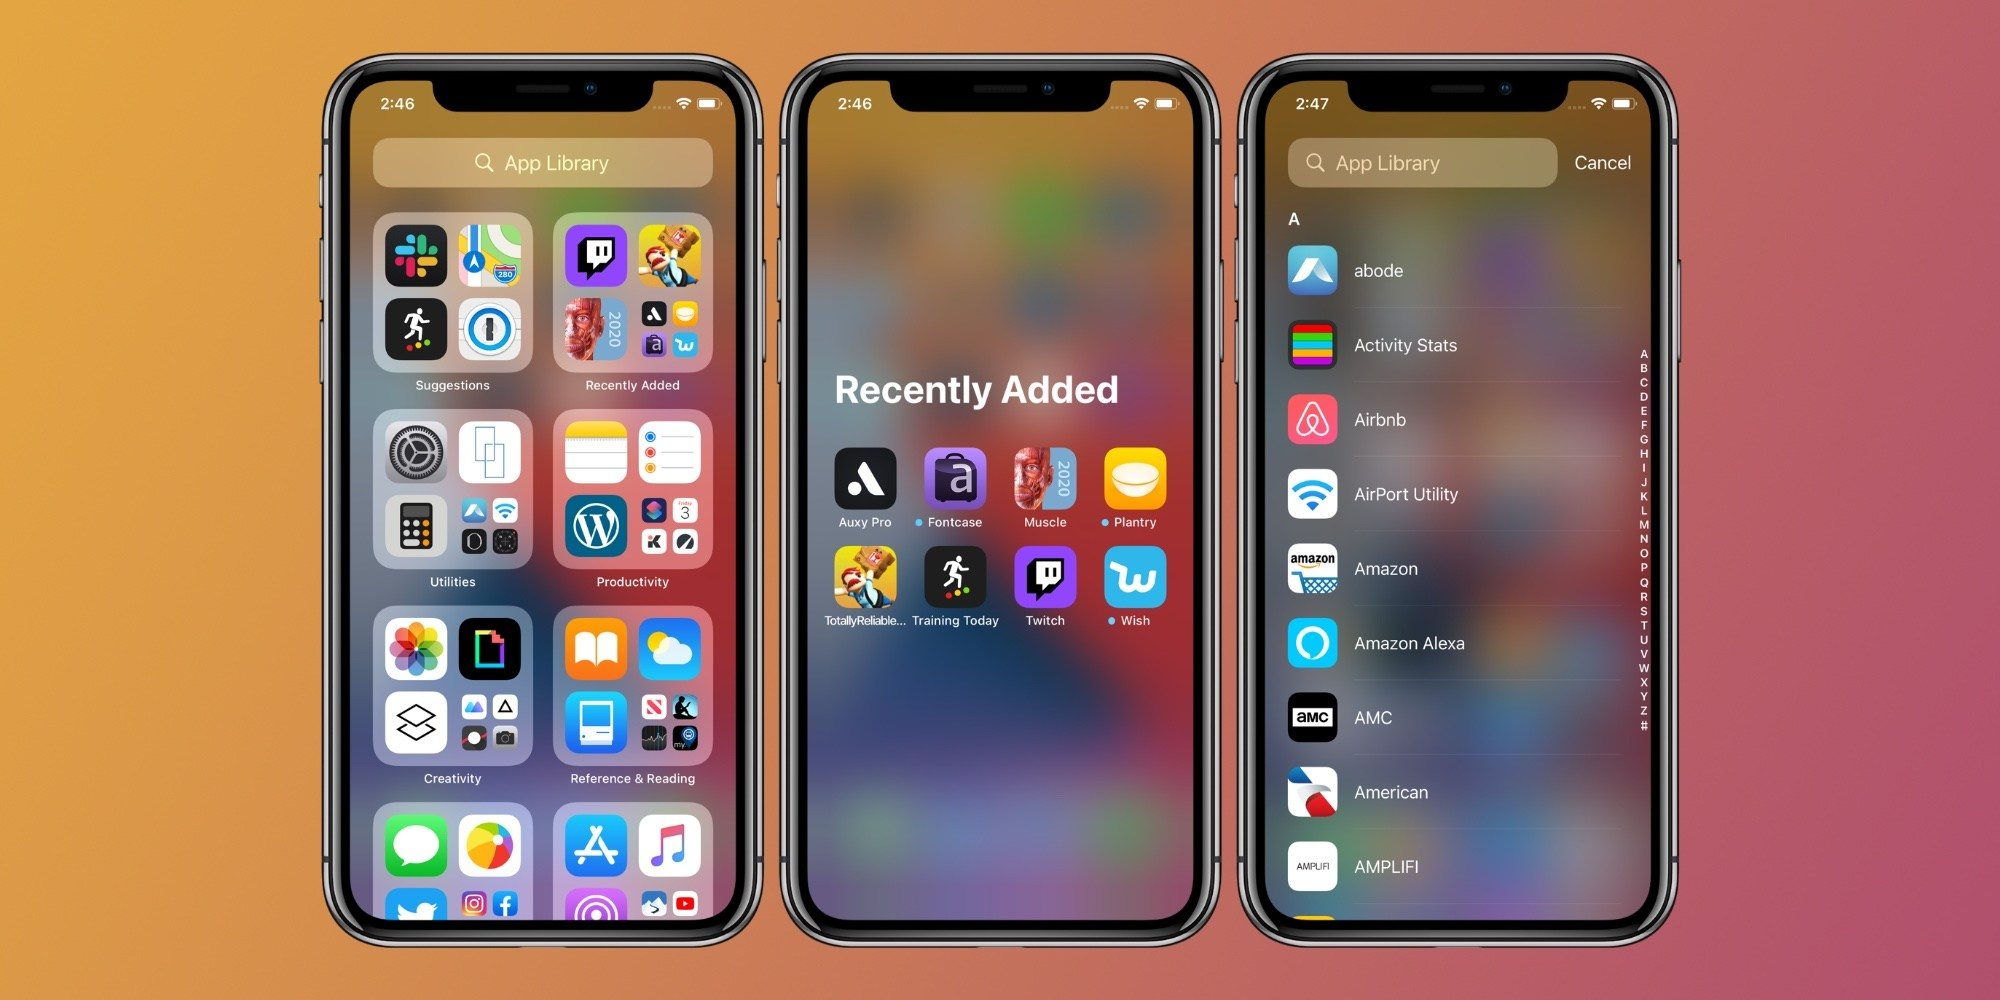 App Library - iOS 14 features